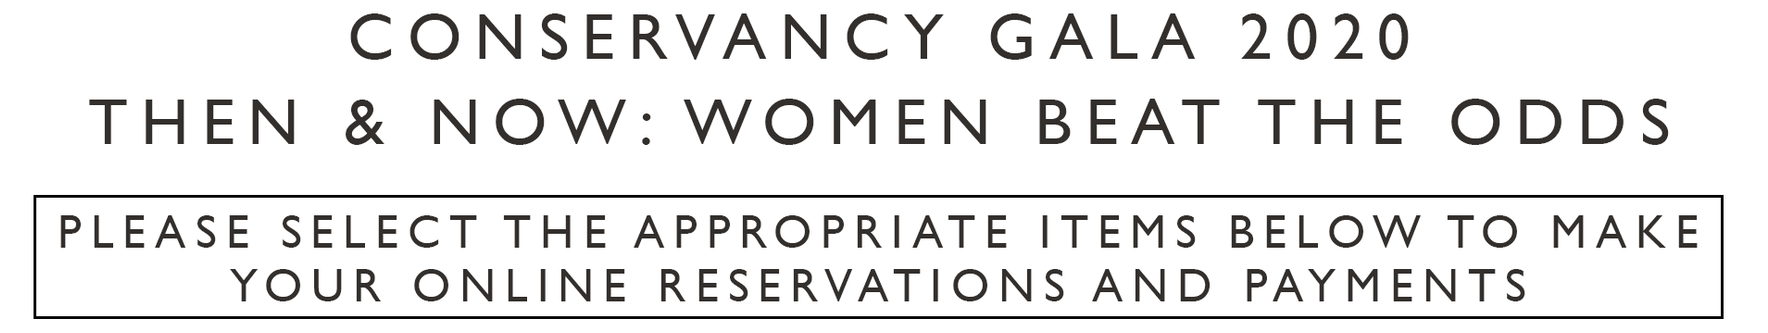 Conservancy Gala 2020 - Then Now: Women Beat the Odds Home